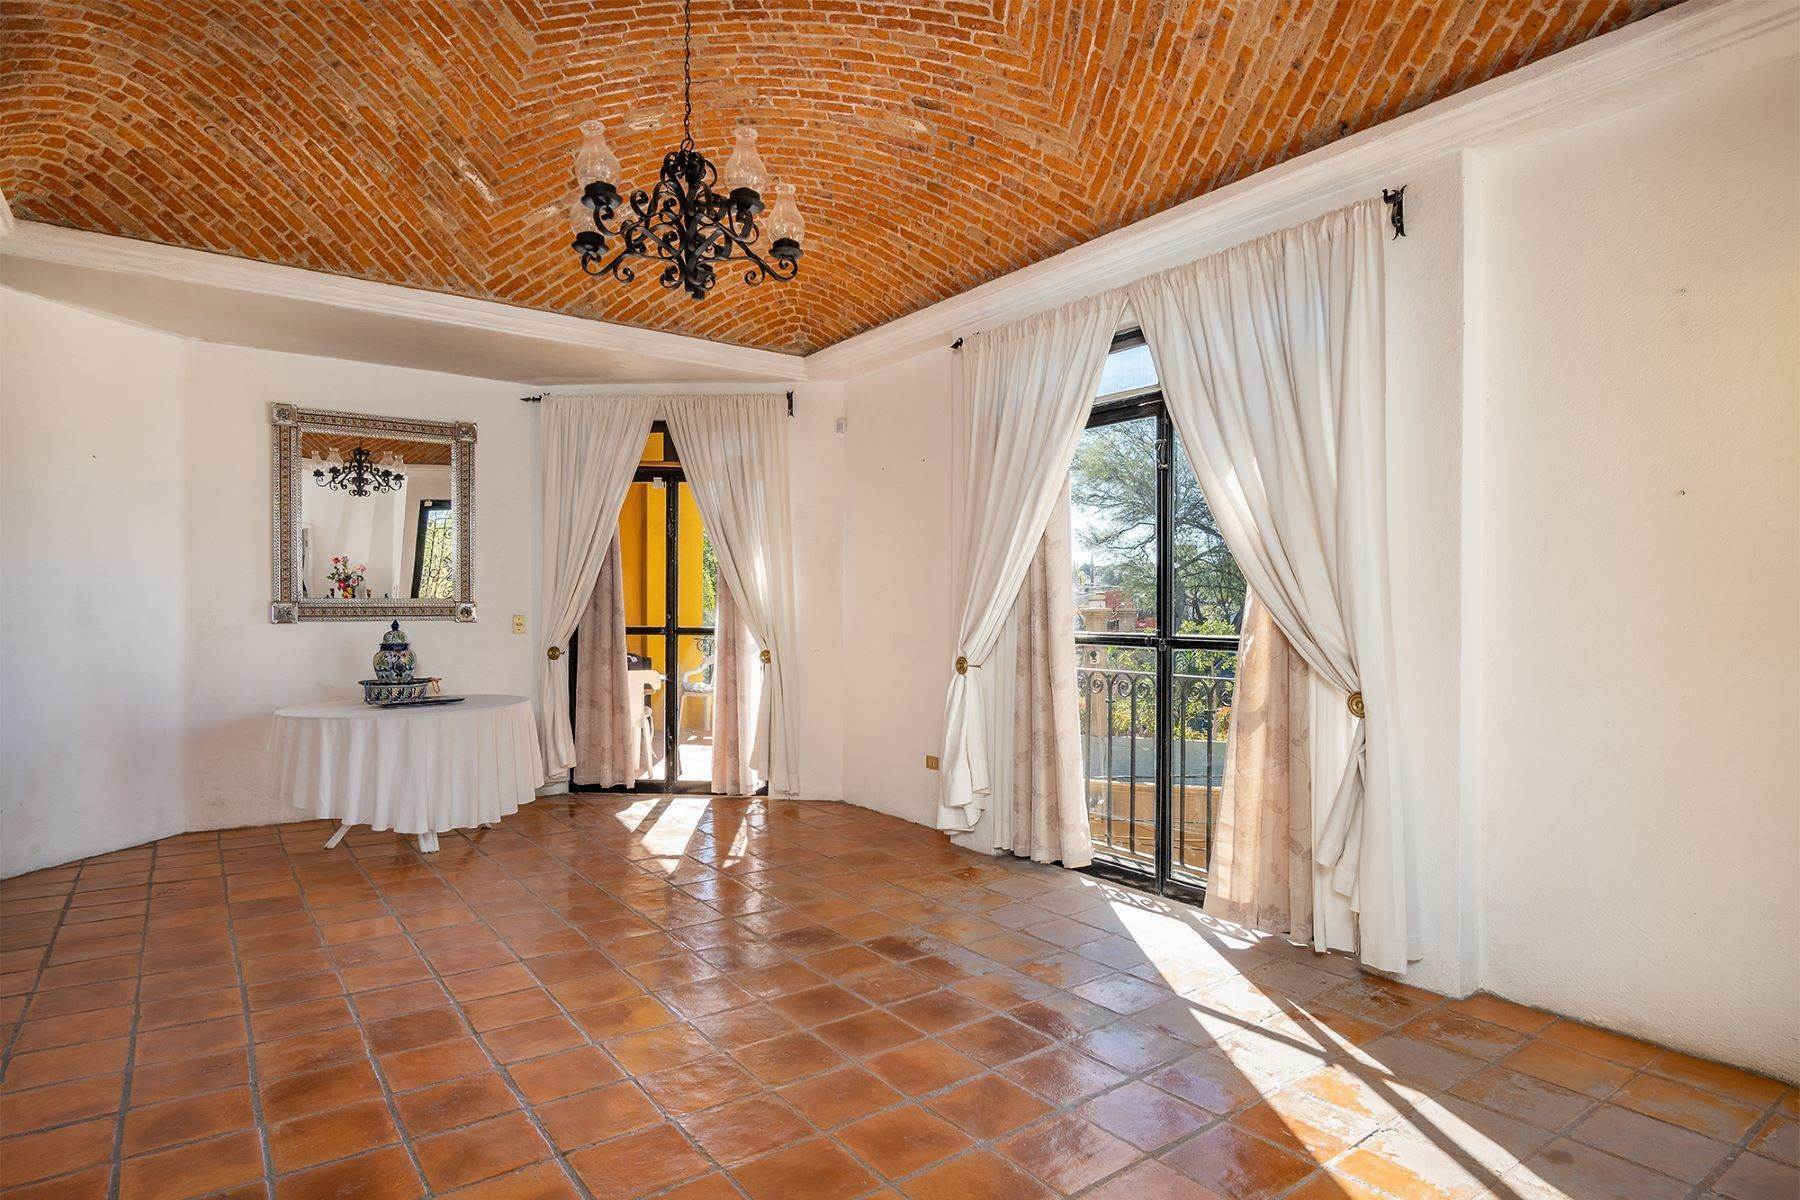 10. Single Family Homes for Sale at Pila Seca 2B, Centro Histórico San Miguel De Allende, Guanajuato 37700 Mexico